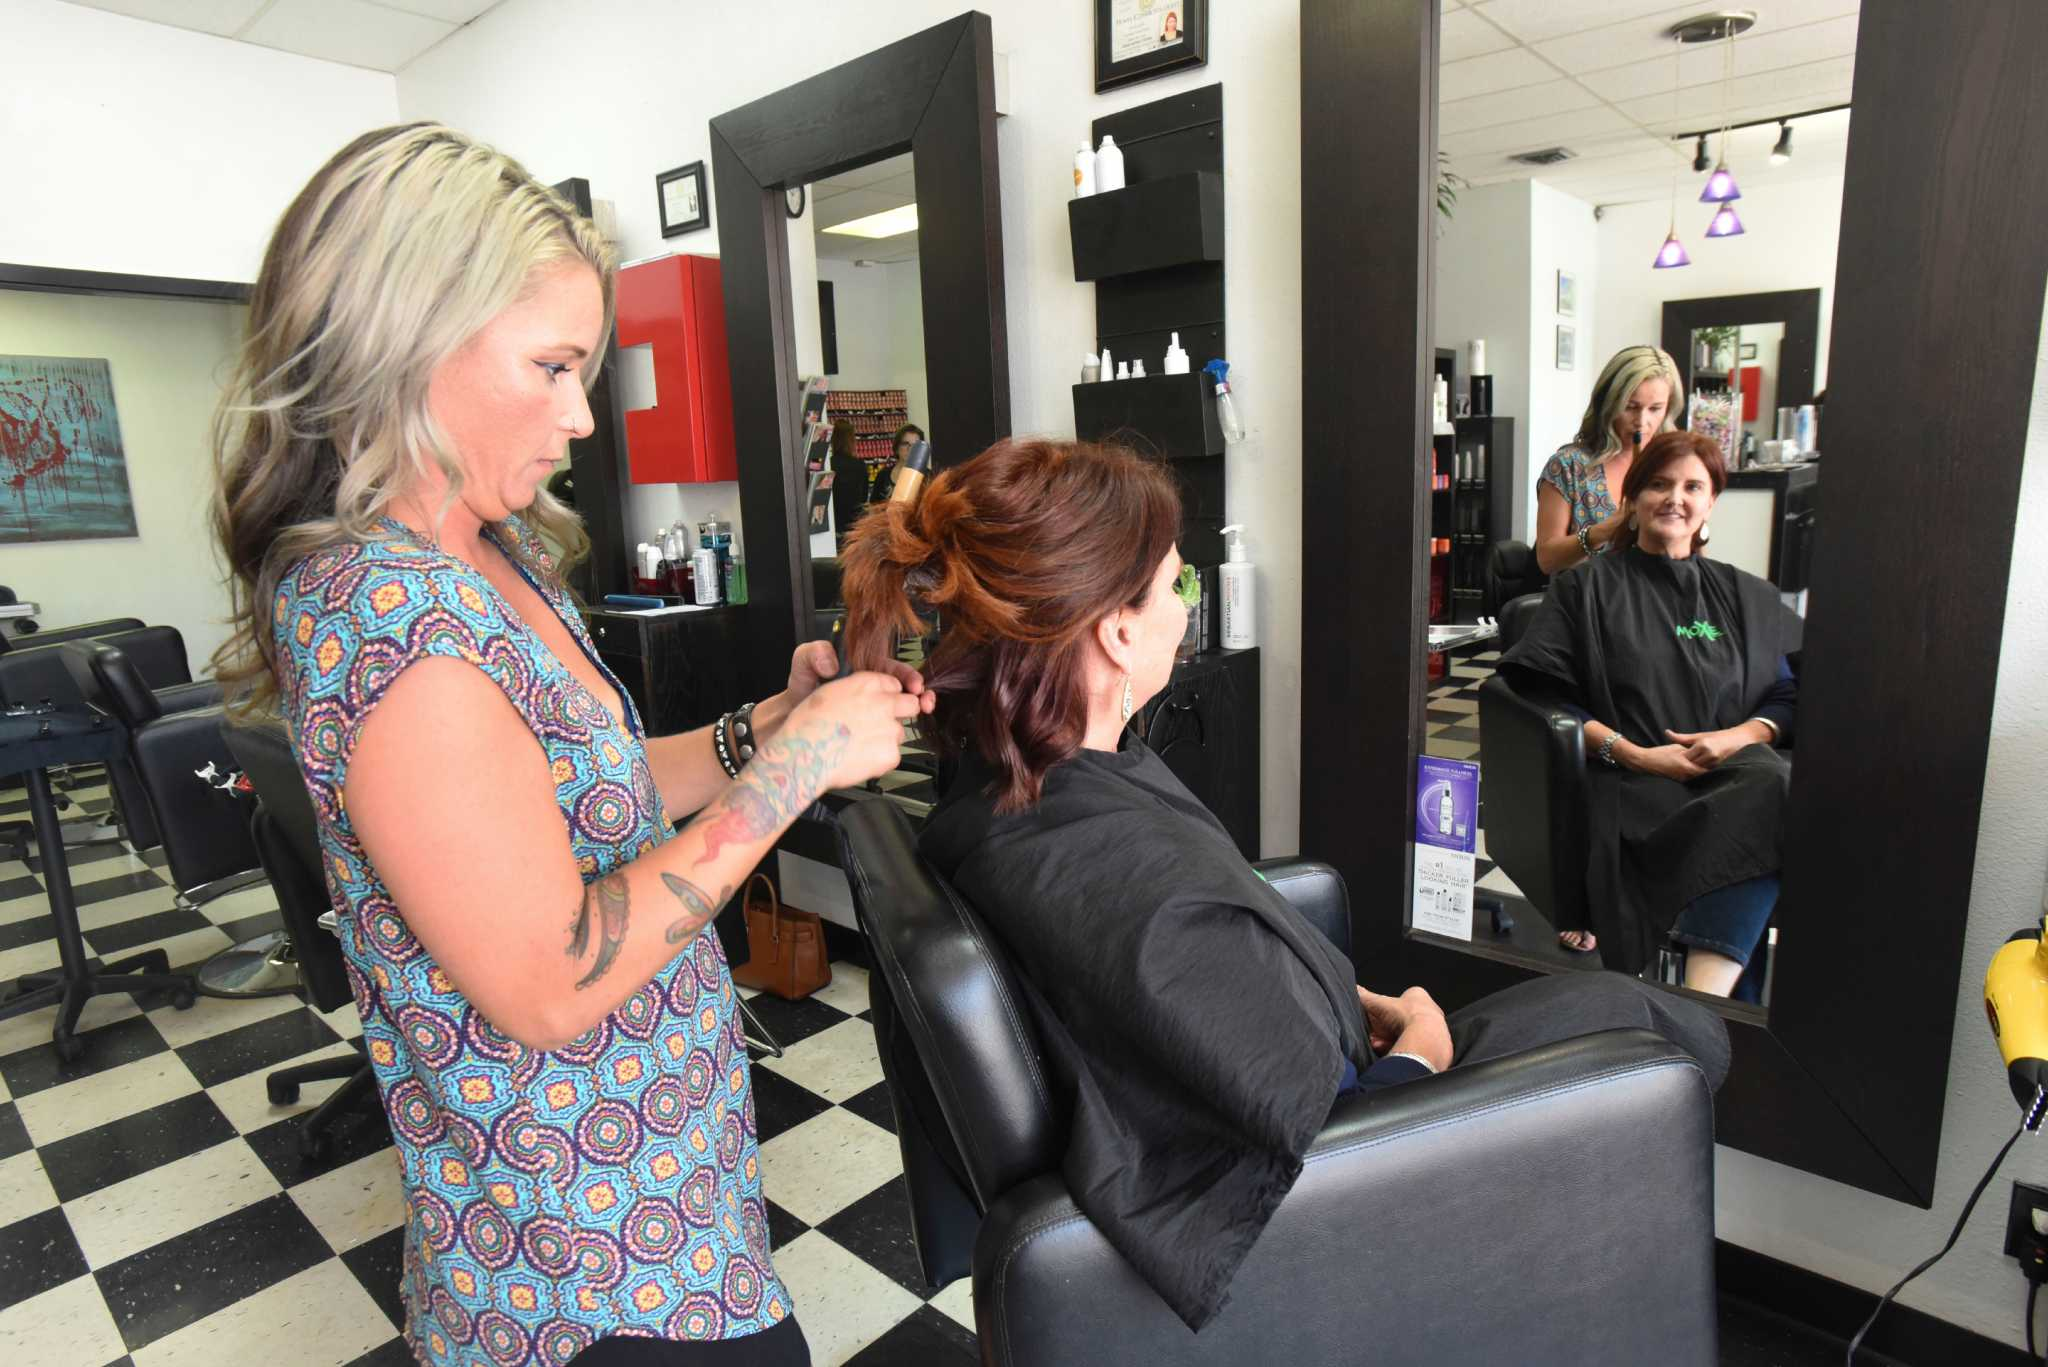 Salon Hair Readers Choice Voters Name Moxie Hair Salon No 1 Hair Salon In